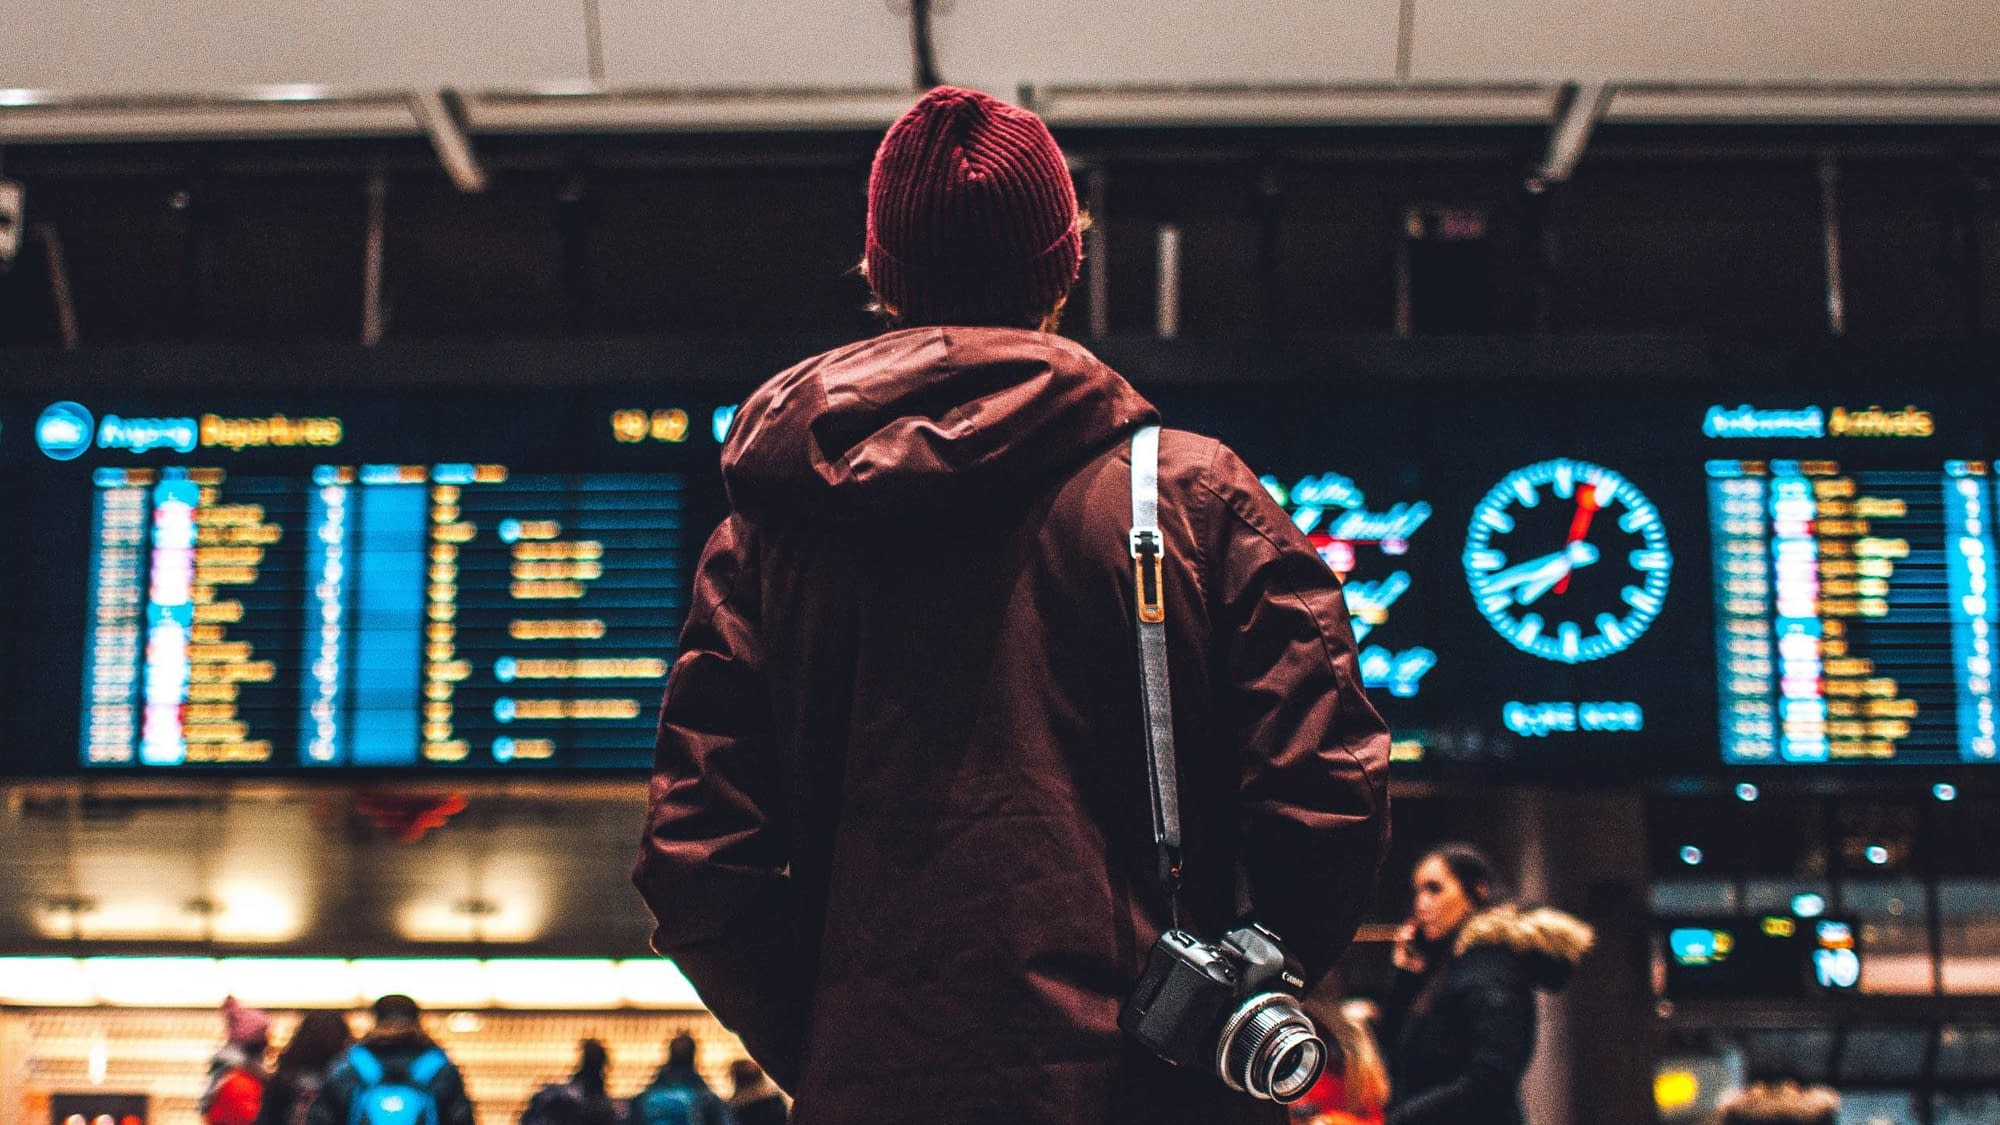 Man looking at flight boards